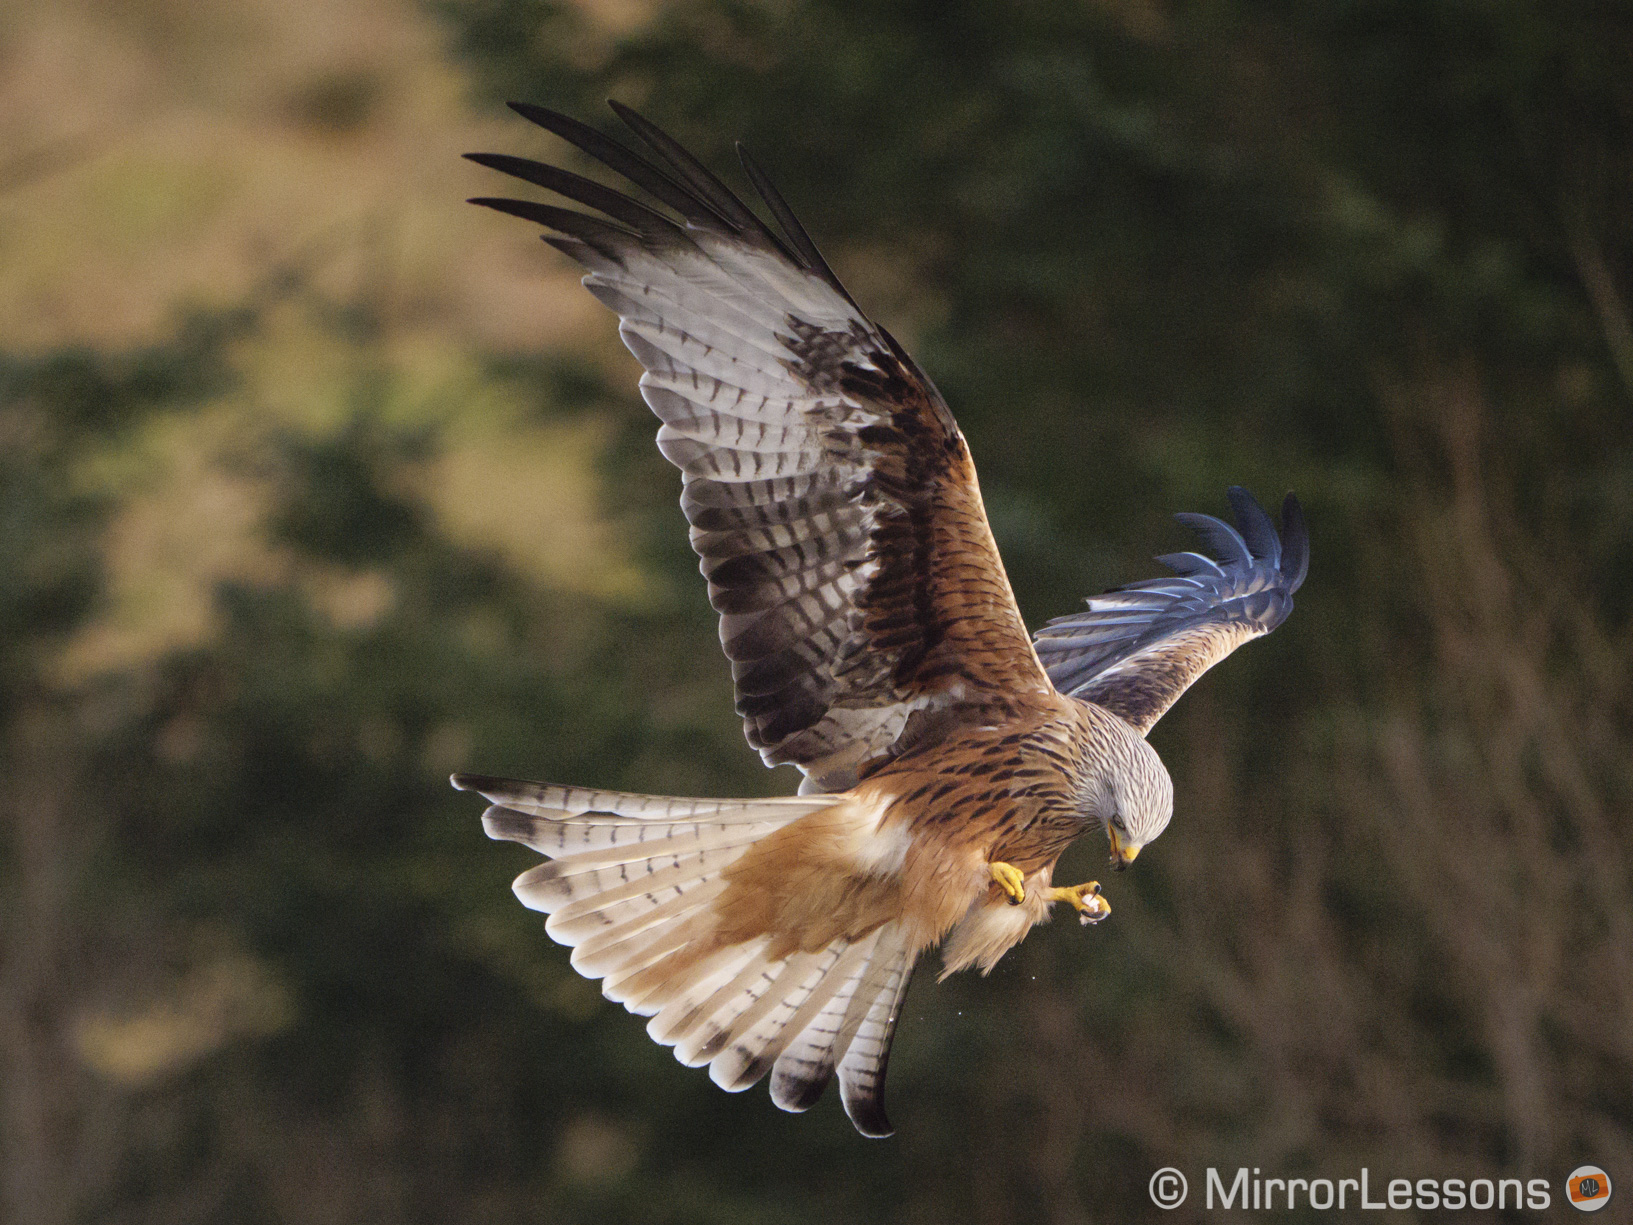 red kite bringing the food it holds with its paw to its beak